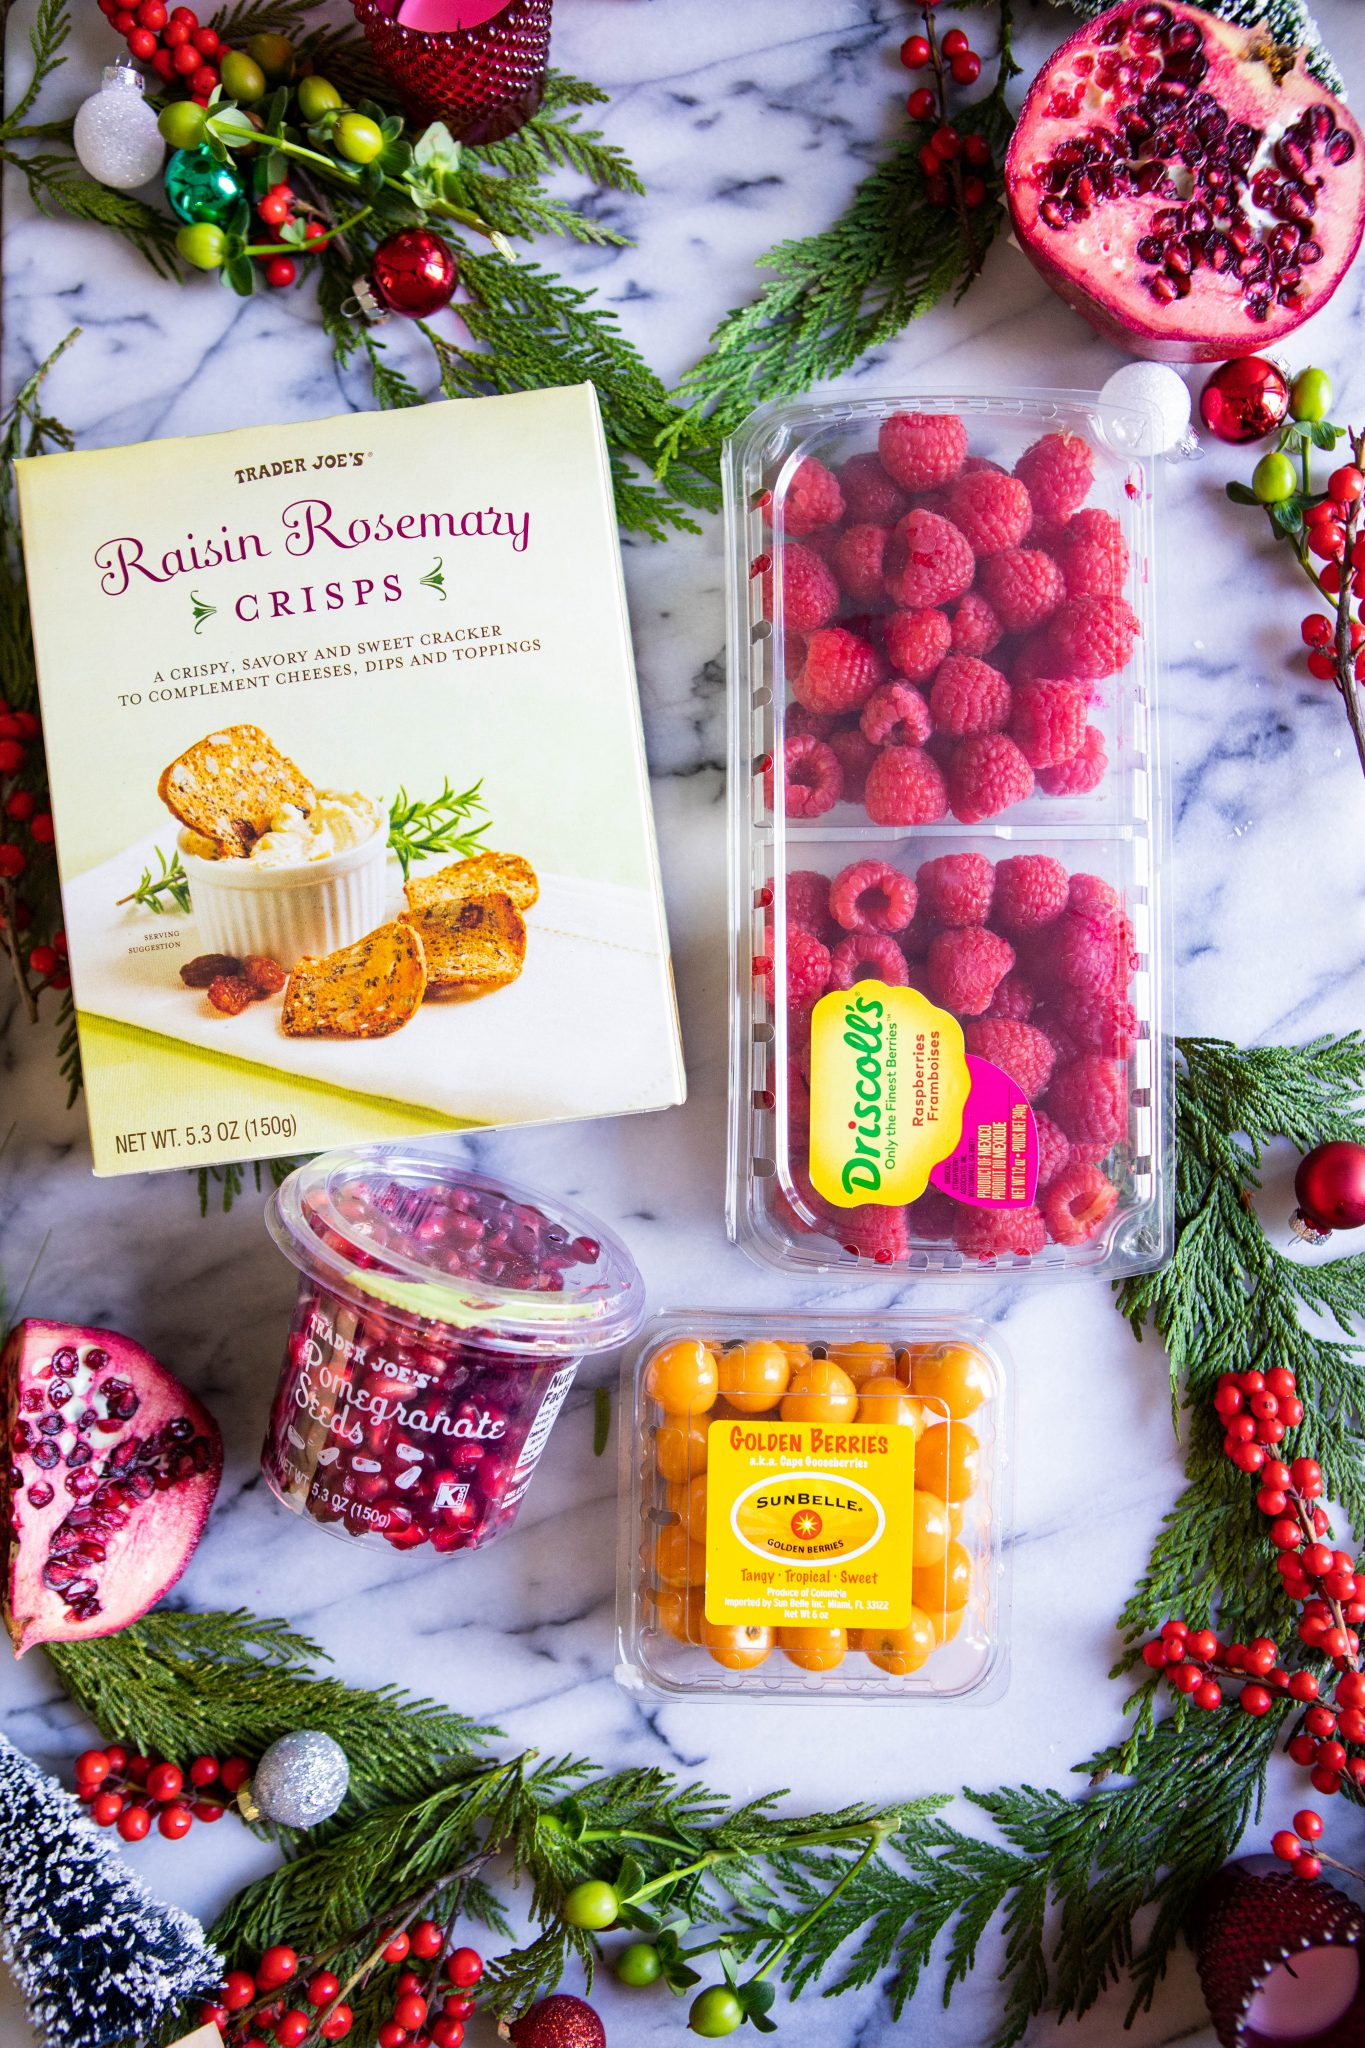 Berries, Trader Joe's crackers and other snacks